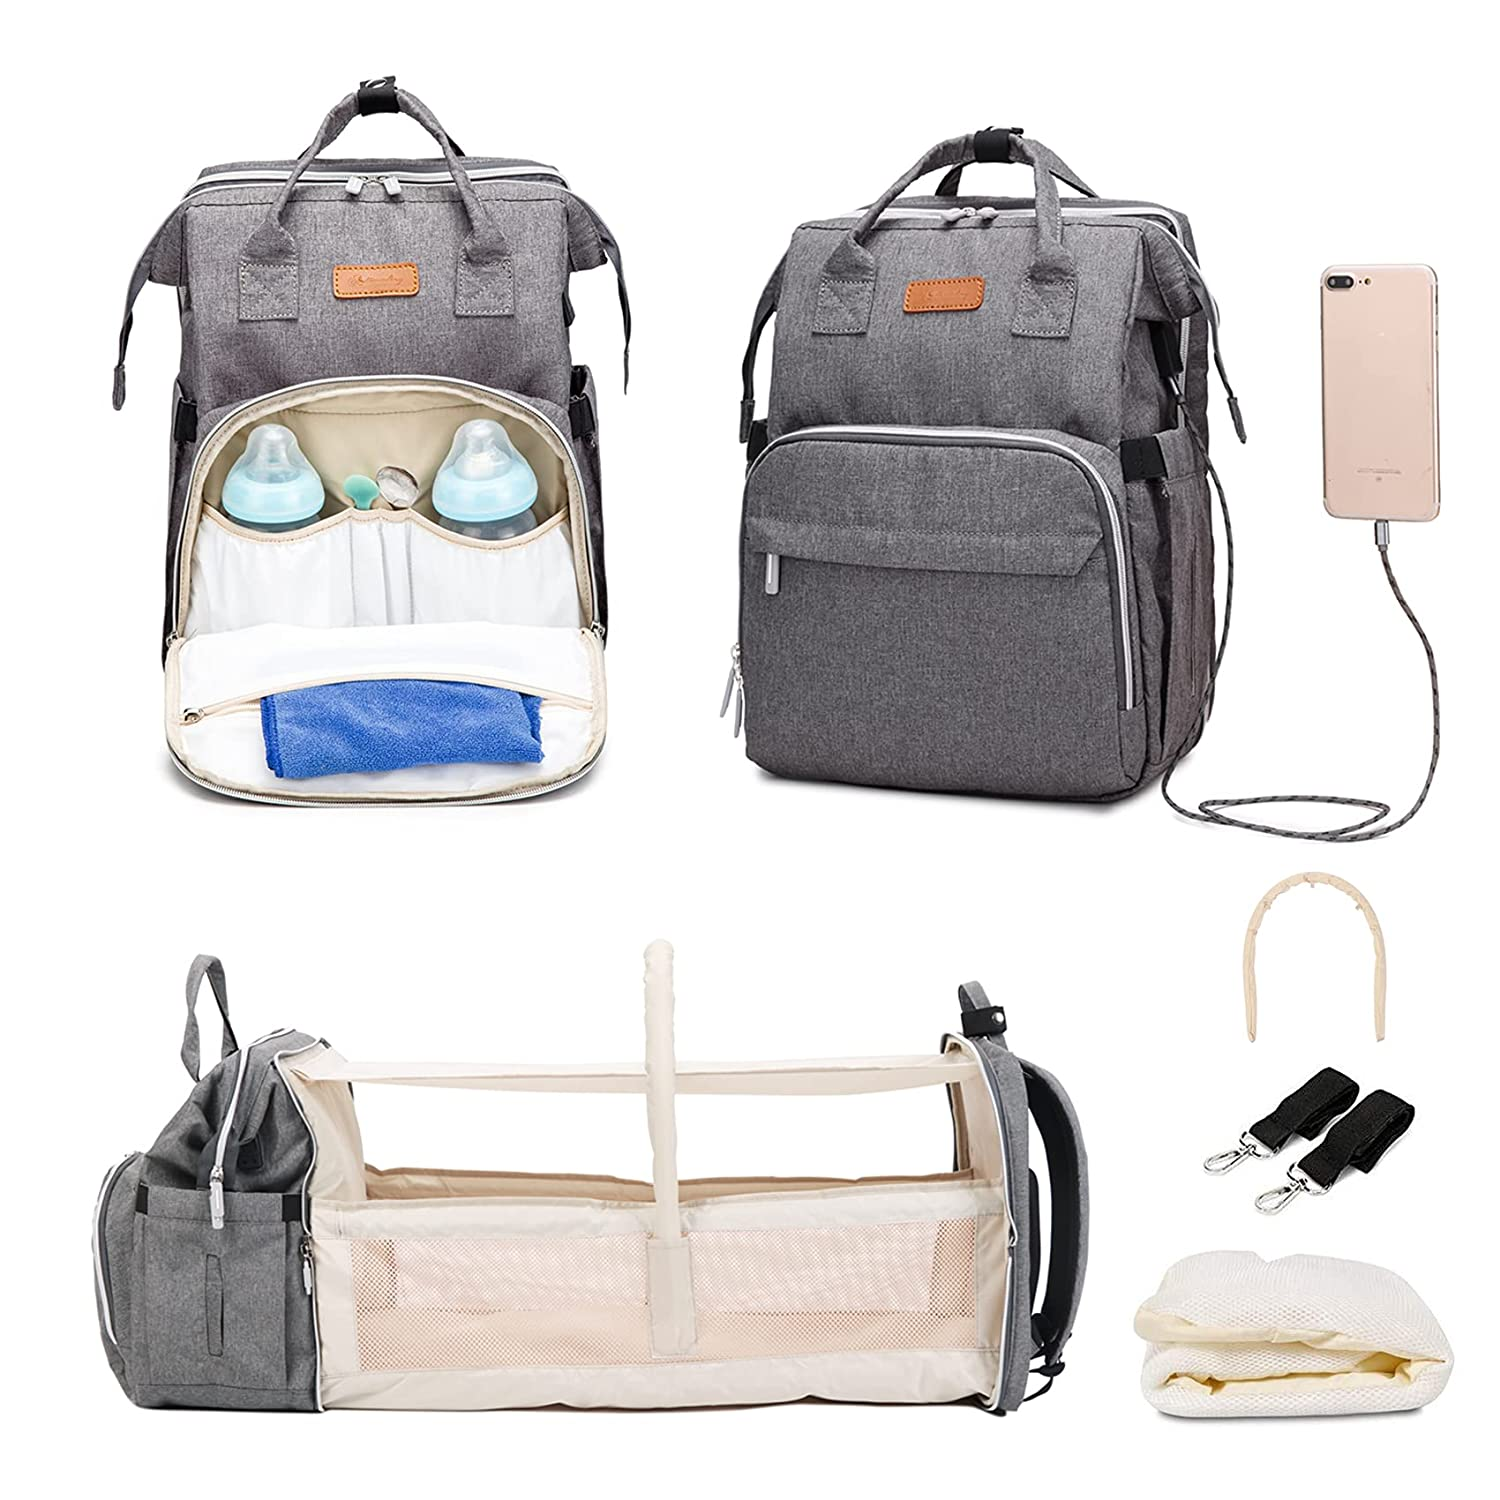 Baby Diaper Bag, Diaper Bag with Changing Station, Portable Diaper Backpack with USB Charging Port, Waterproof(Grey)